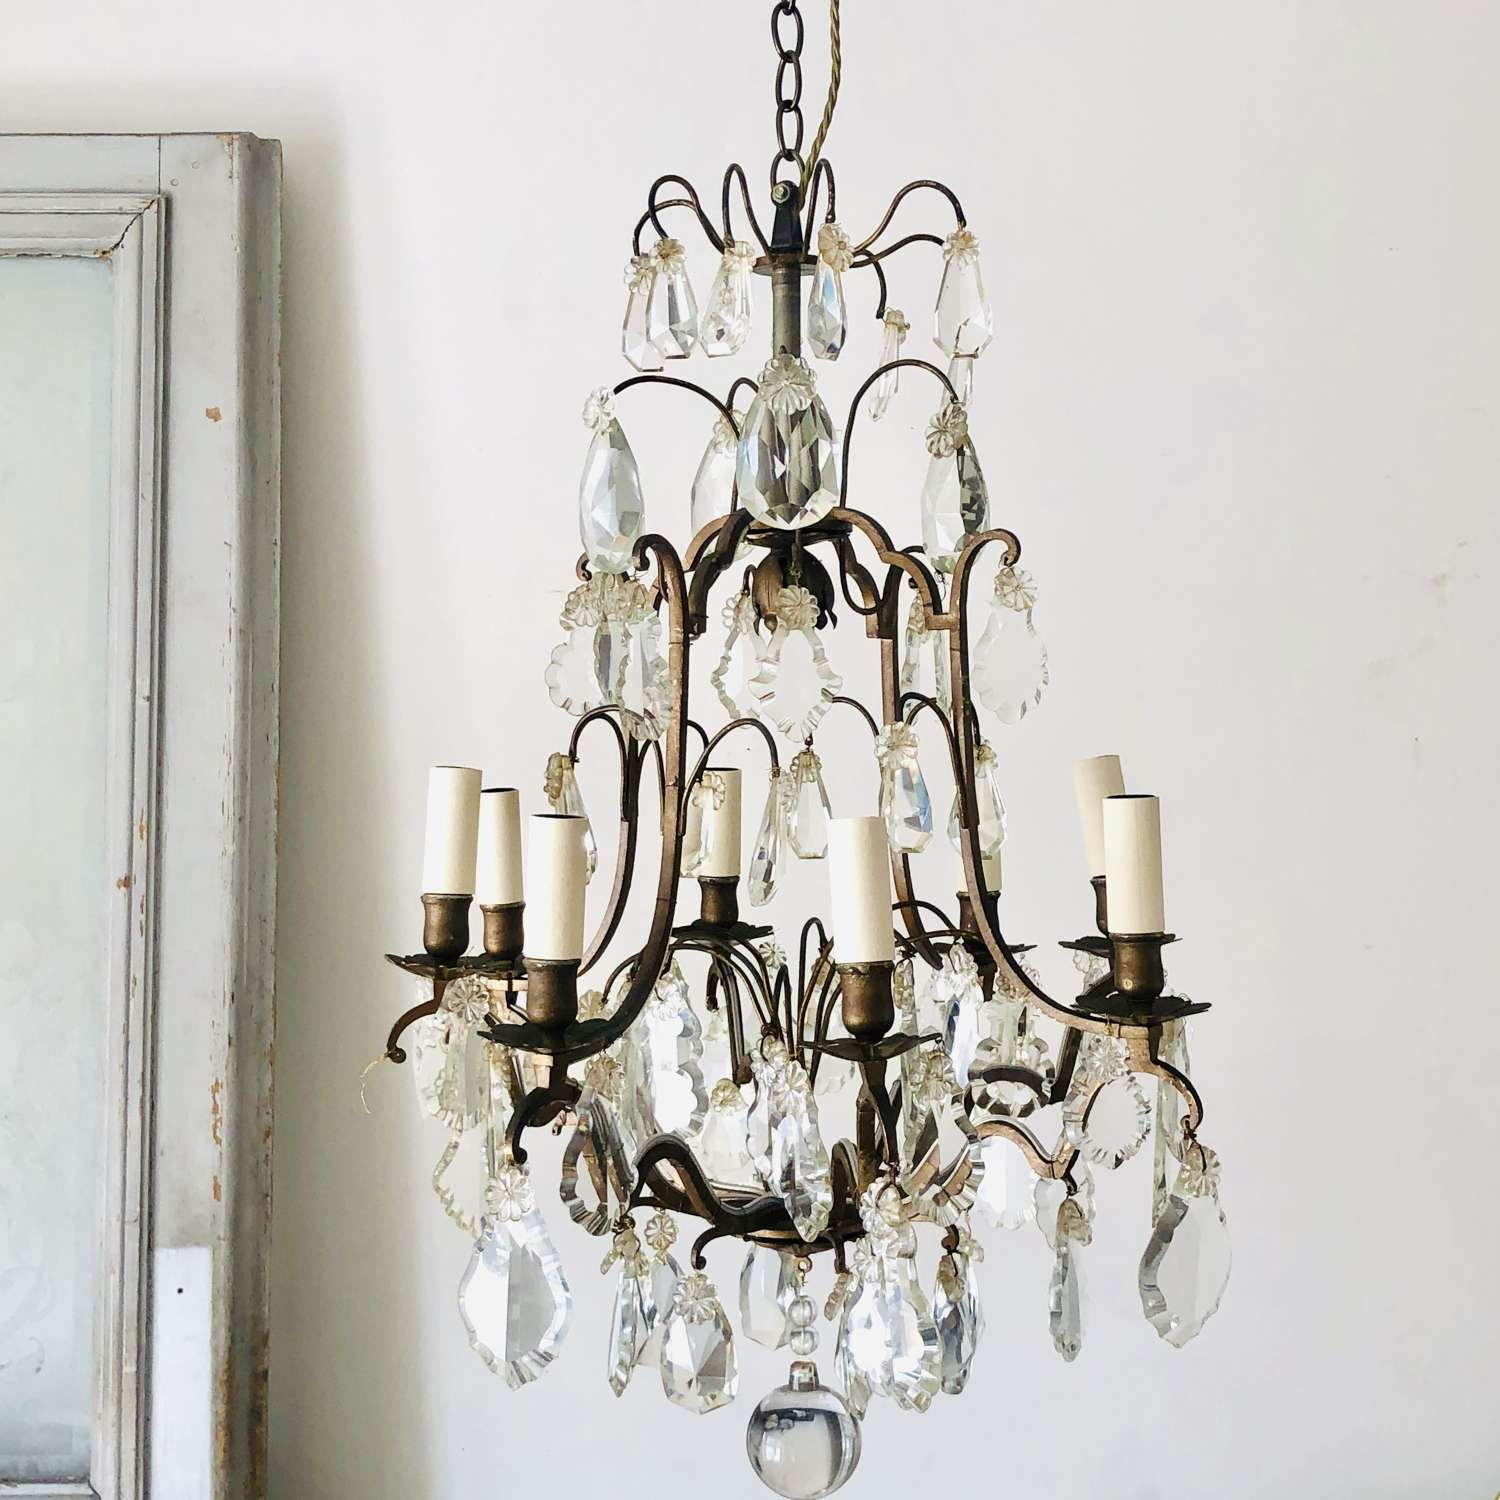 Large 19th century French antique cage chandelier - rewired